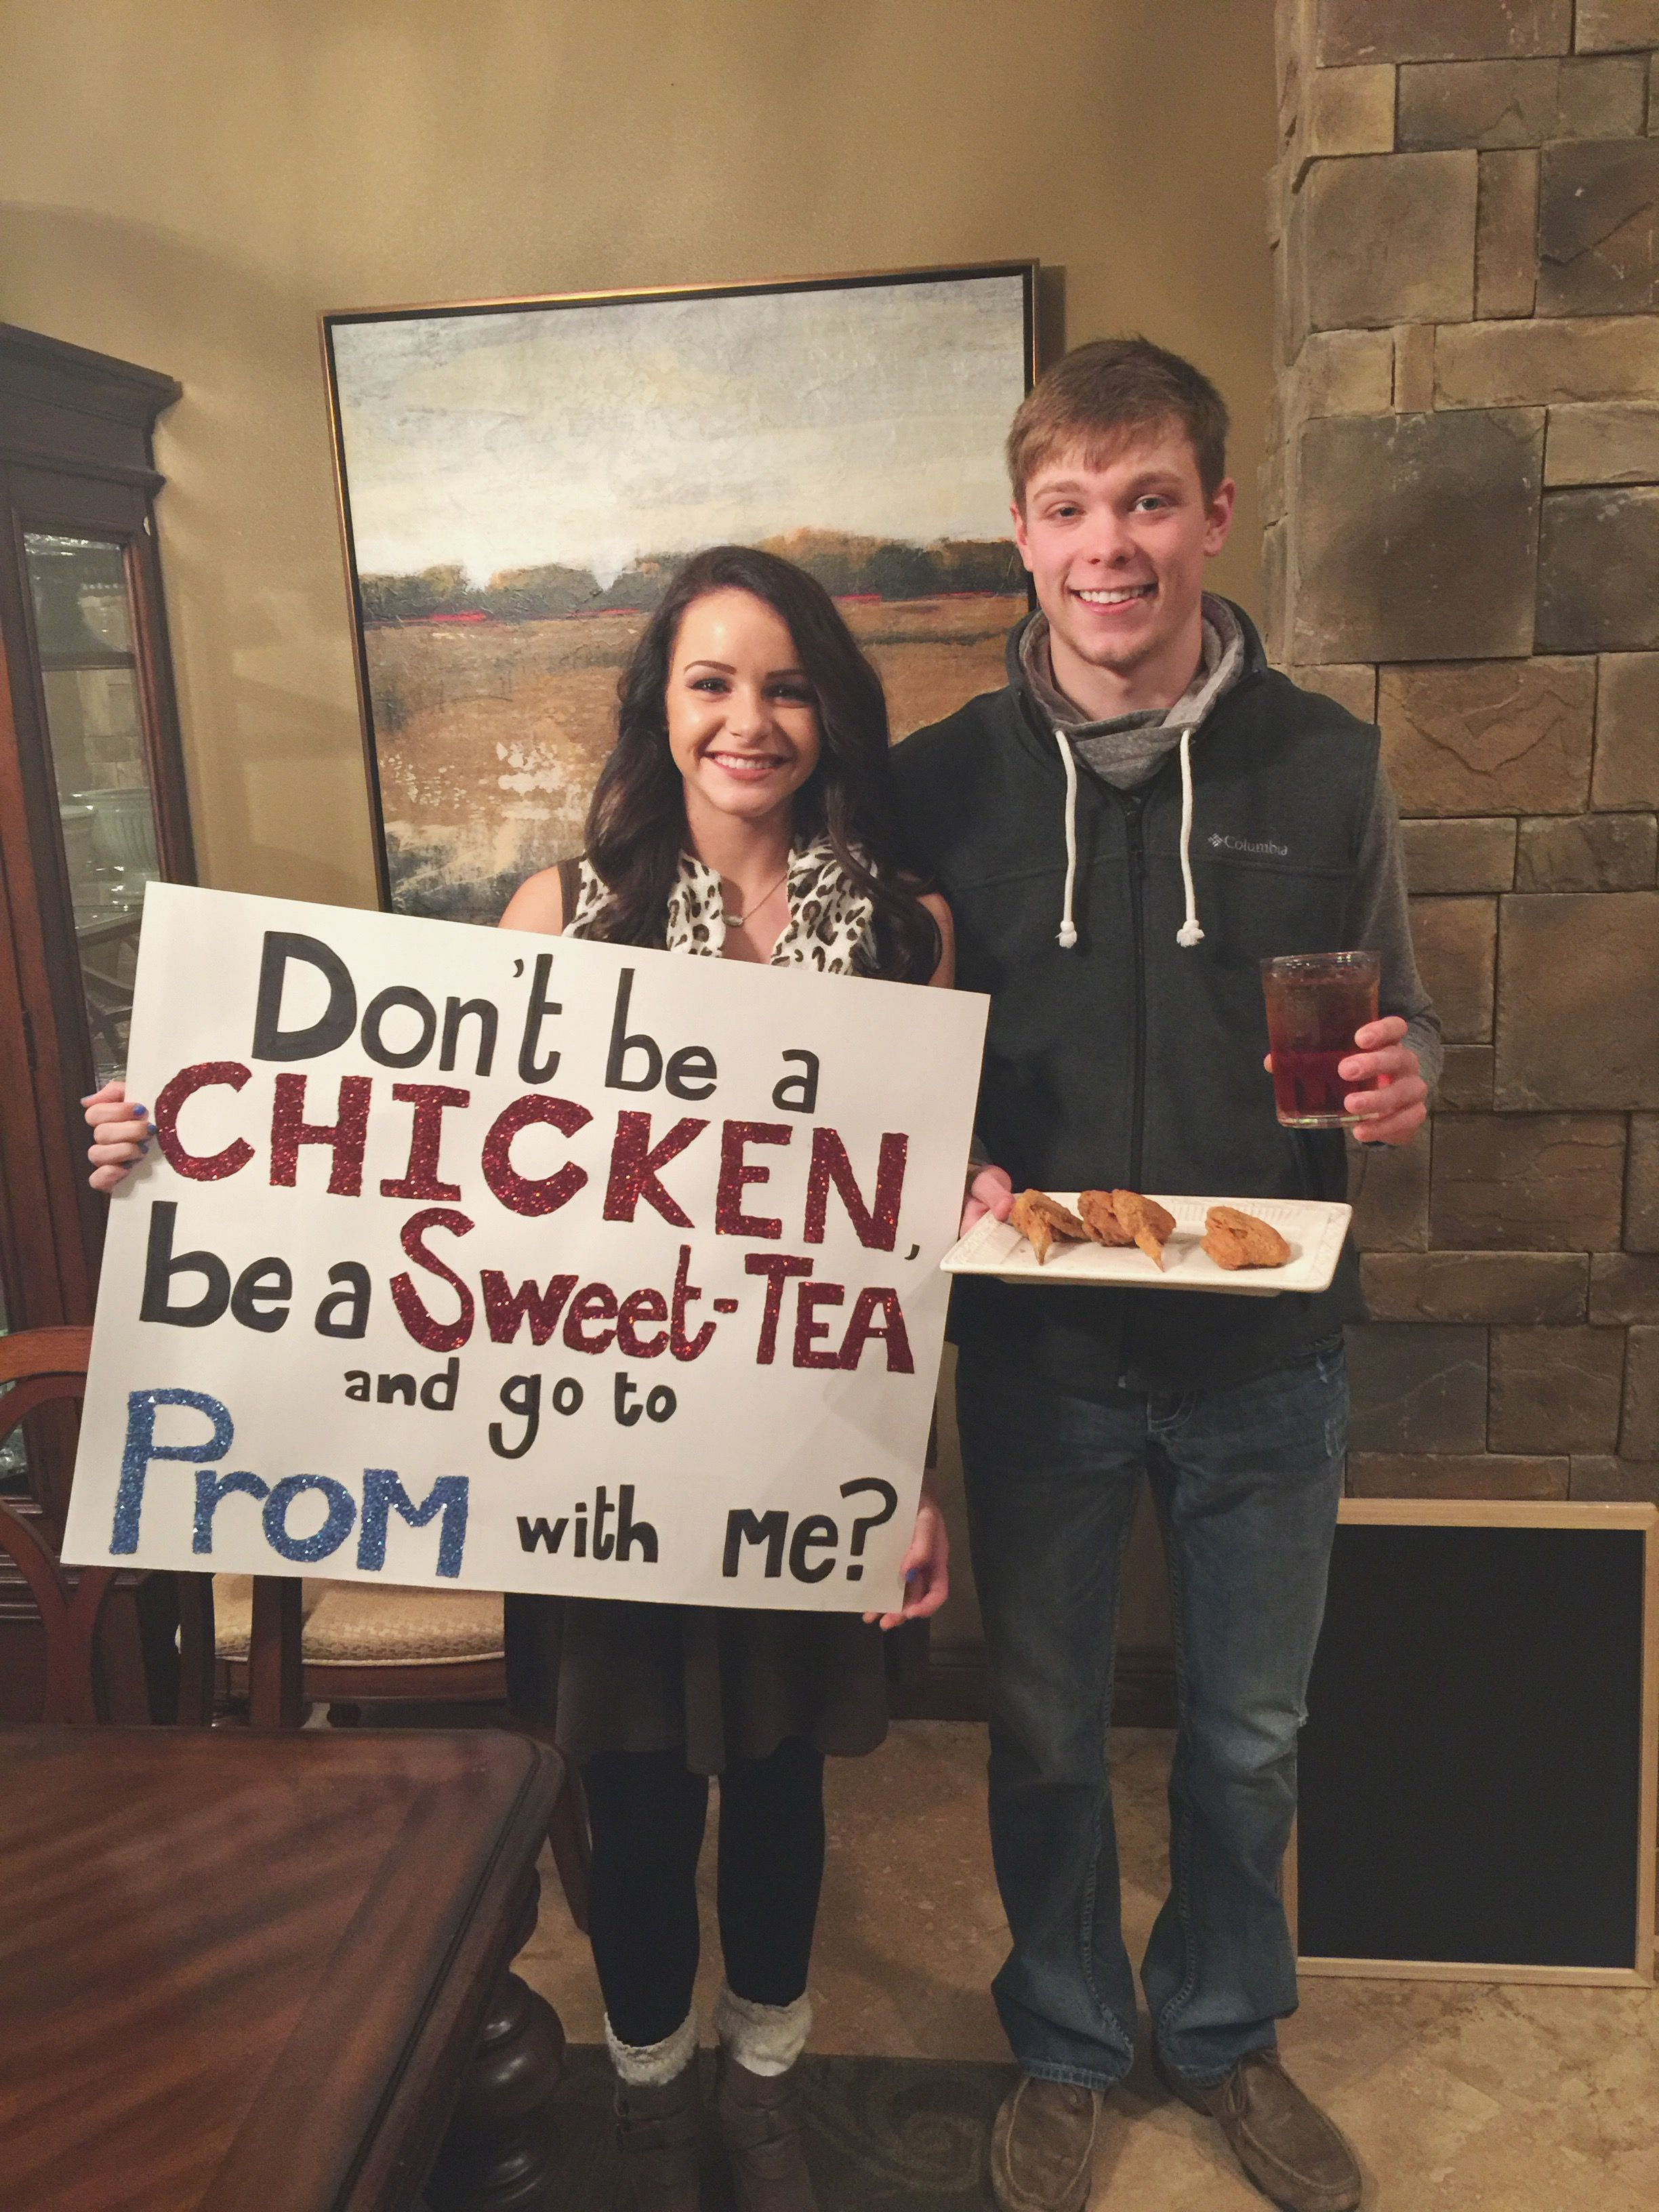 chicken and sweet tea promposal art ideas pinterest promposal dance proposal and prom. Black Bedroom Furniture Sets. Home Design Ideas